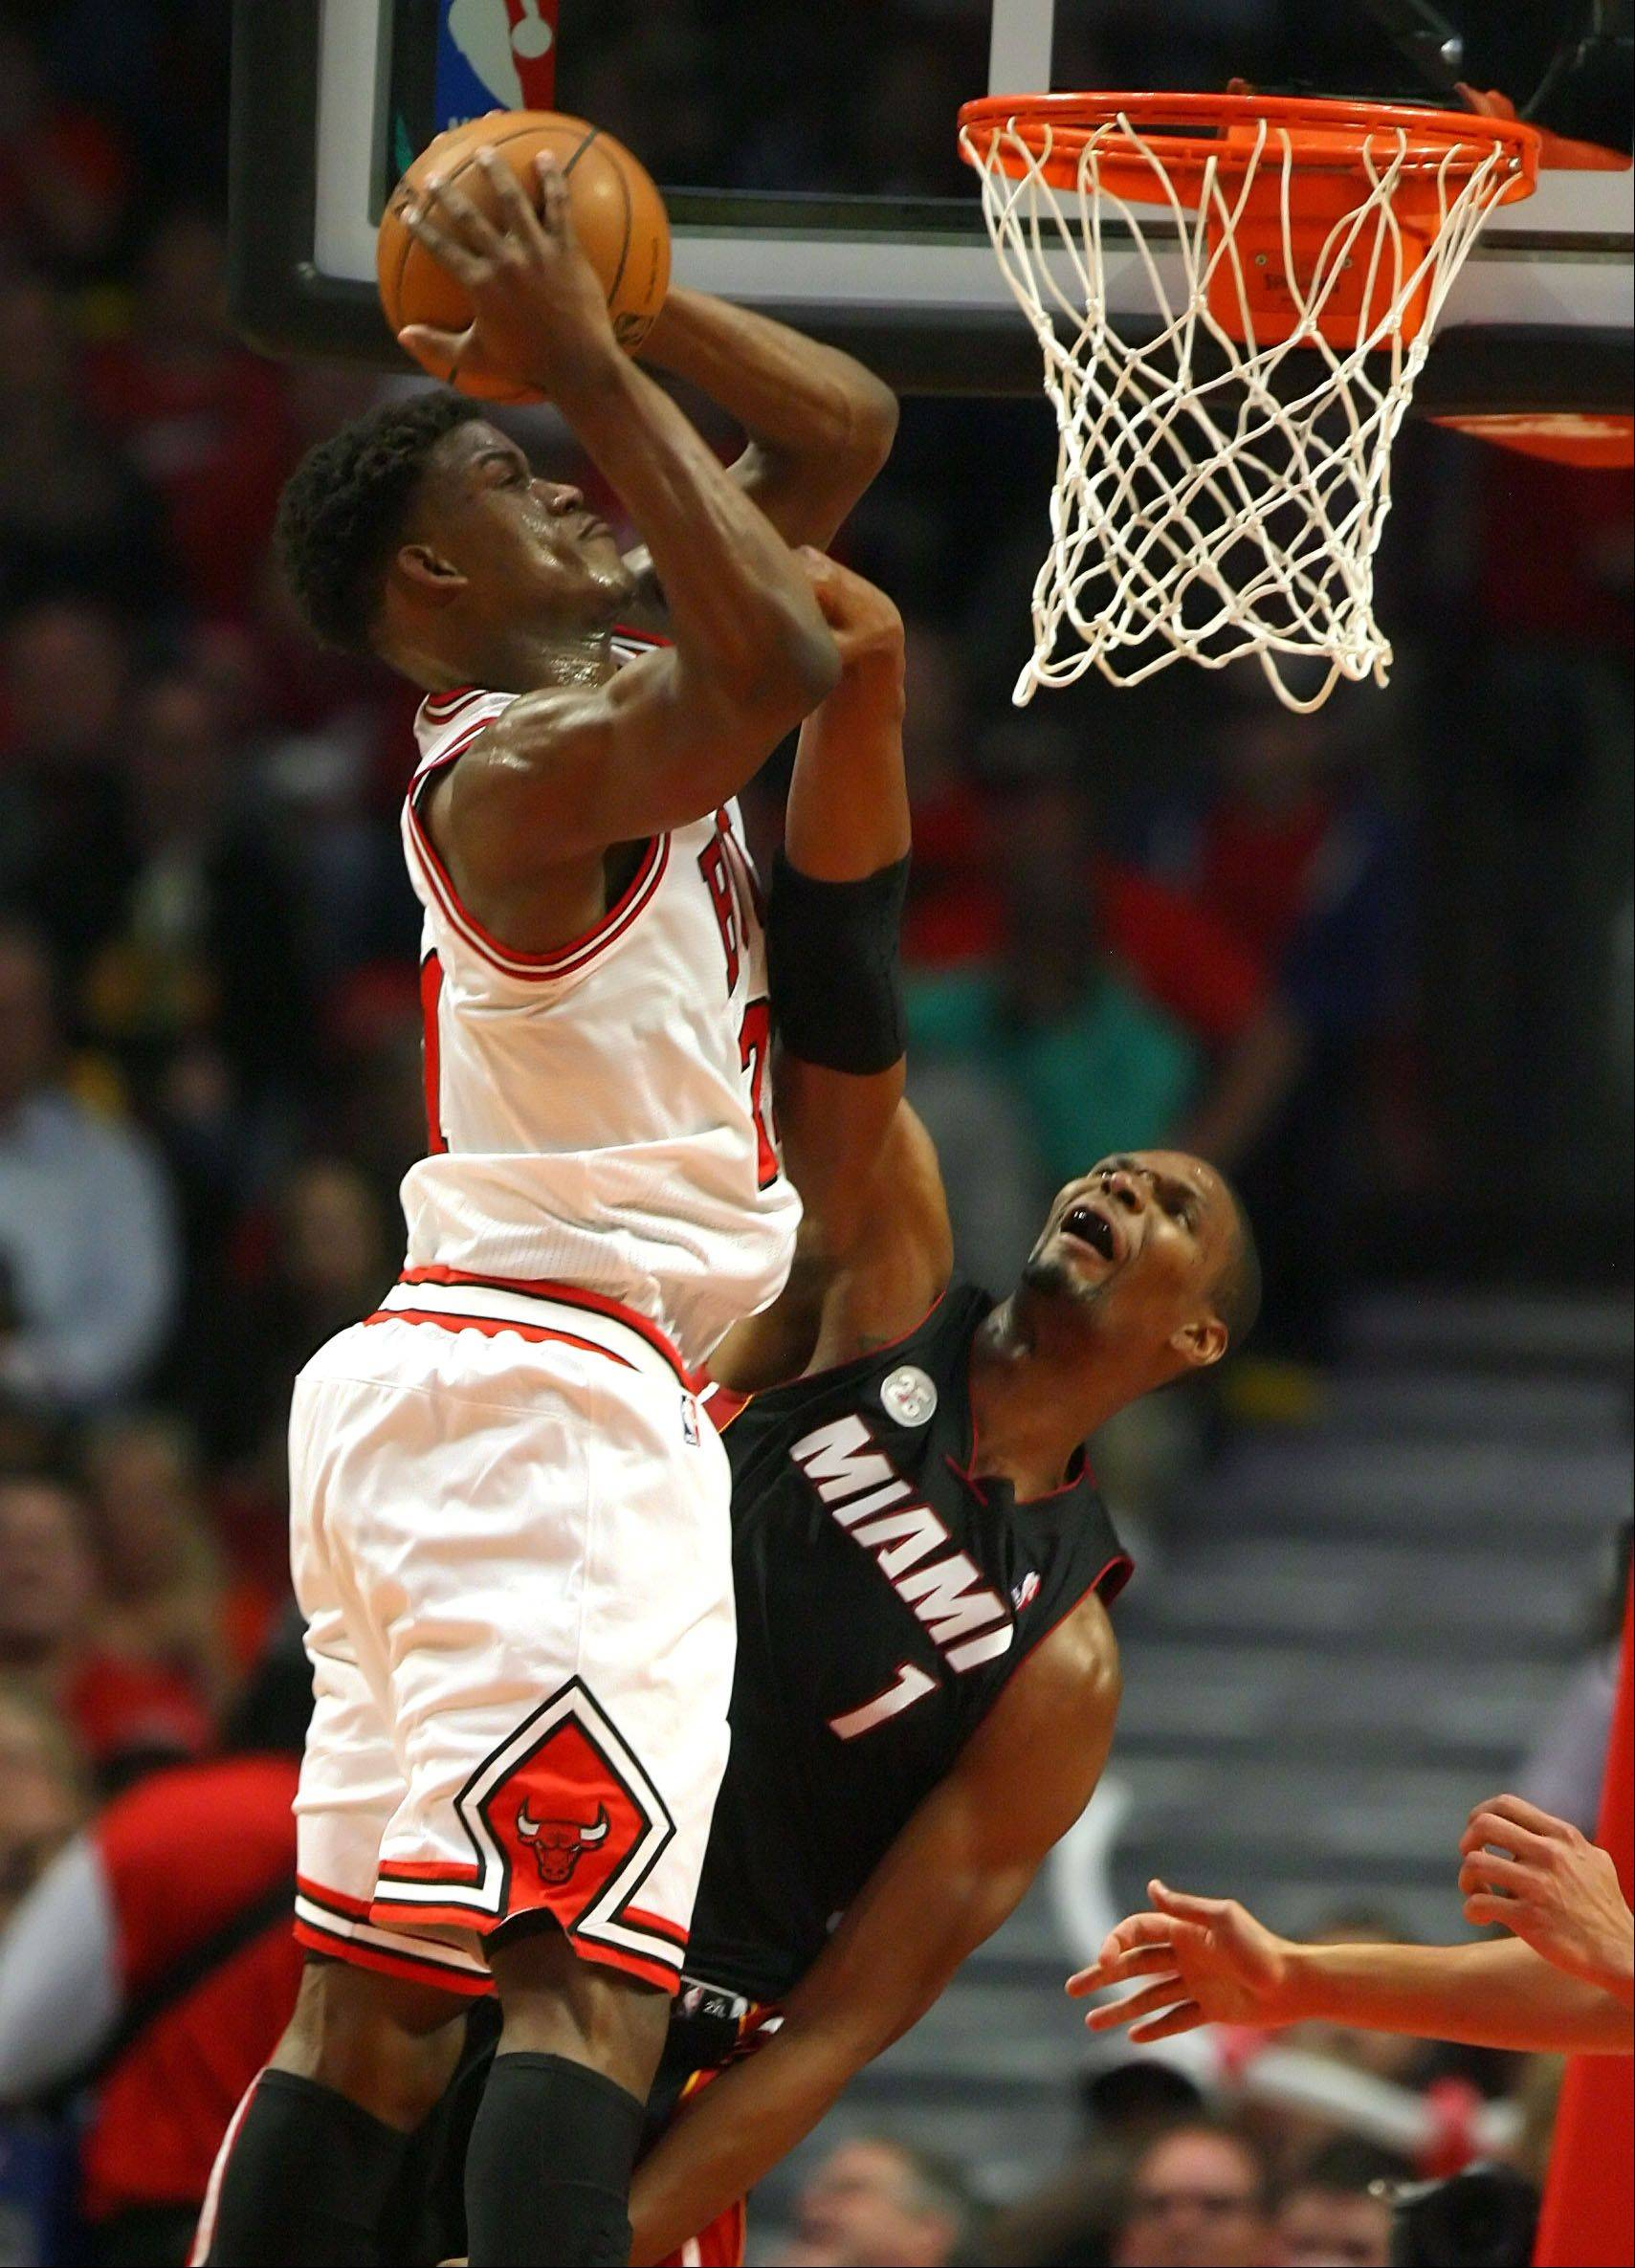 Chicago Bulls small forward Jimmy Butler goes for a rebound with Miami Heat center Chris Bosh .